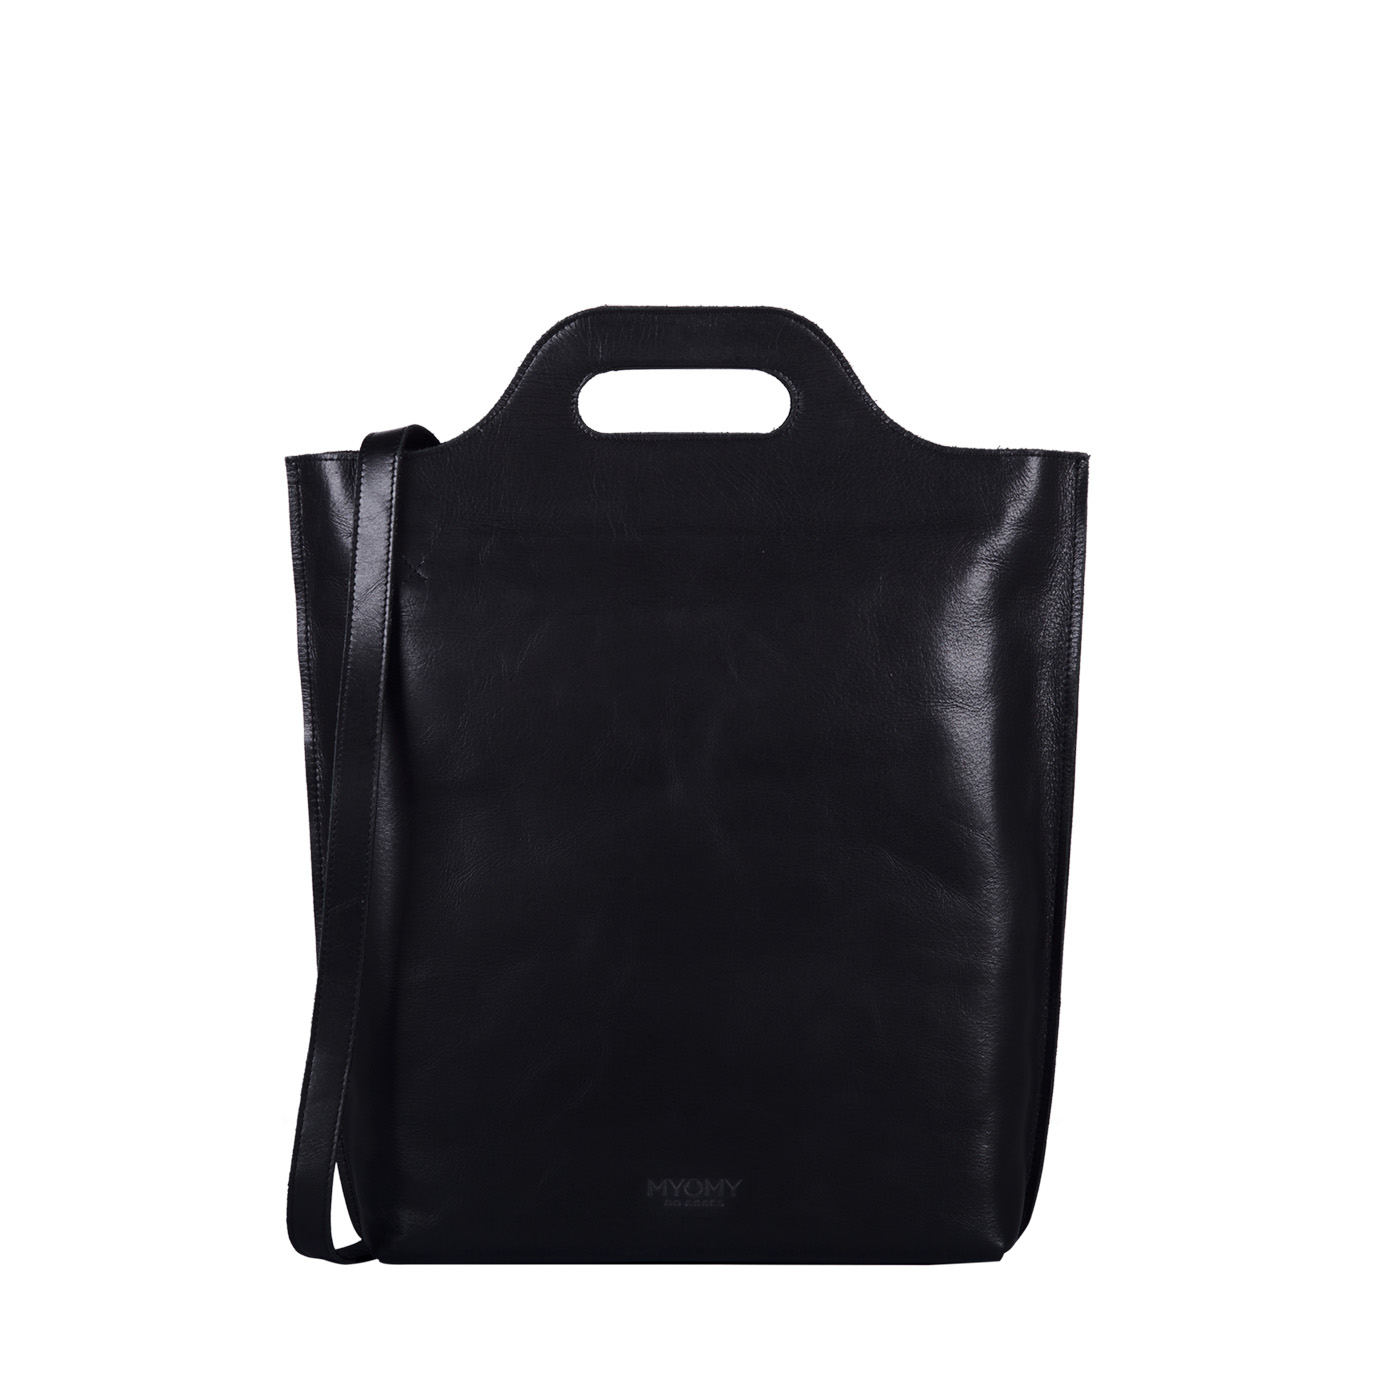 MY CARRY BAG Shopper – hunter waxy black